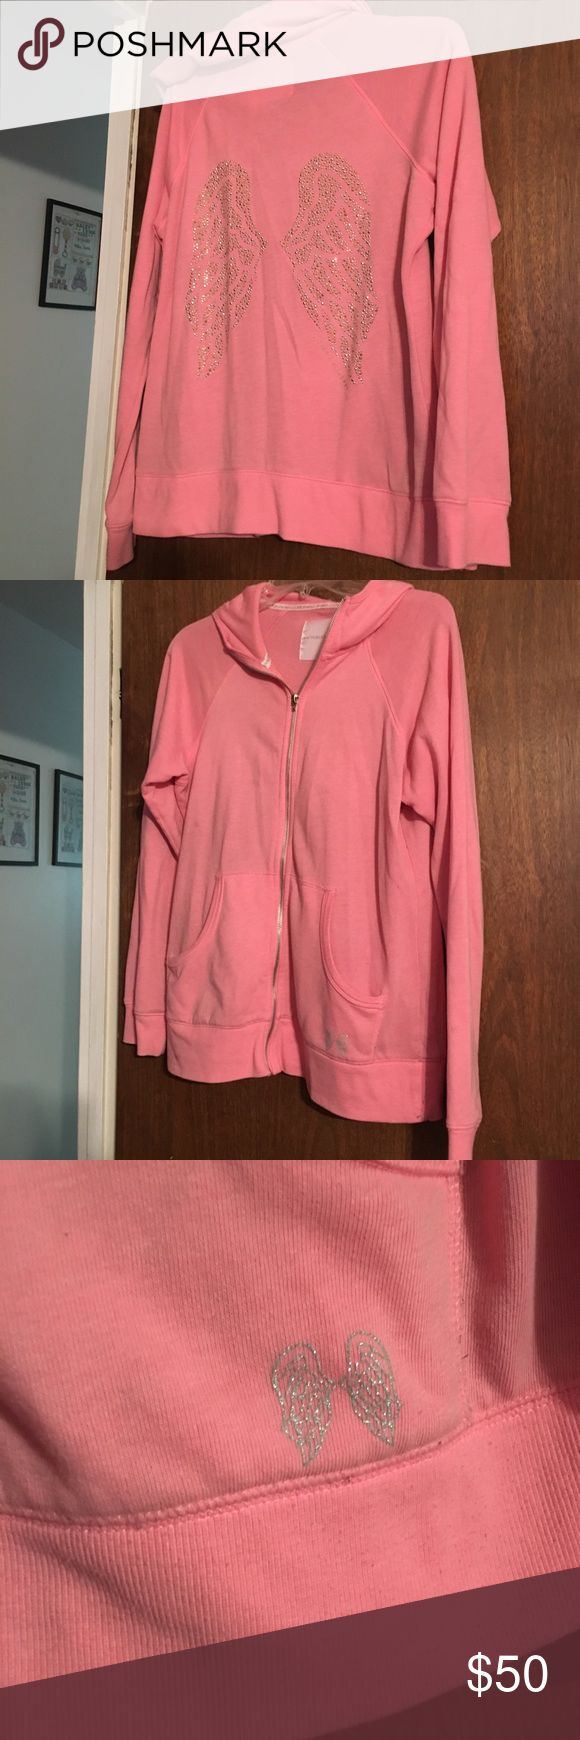 Pink Victoria's Secret Angel Zip Up Large Hoodie Pink Victoria's Secret VS Angel Zip Up Large Hoodie! Excellent condition! Just missing angel wings on the zipper. Pink with Silver Angel Wings - Rhinestone Bling! Victoria's Secret Tops Sweatshirts & Hoodies